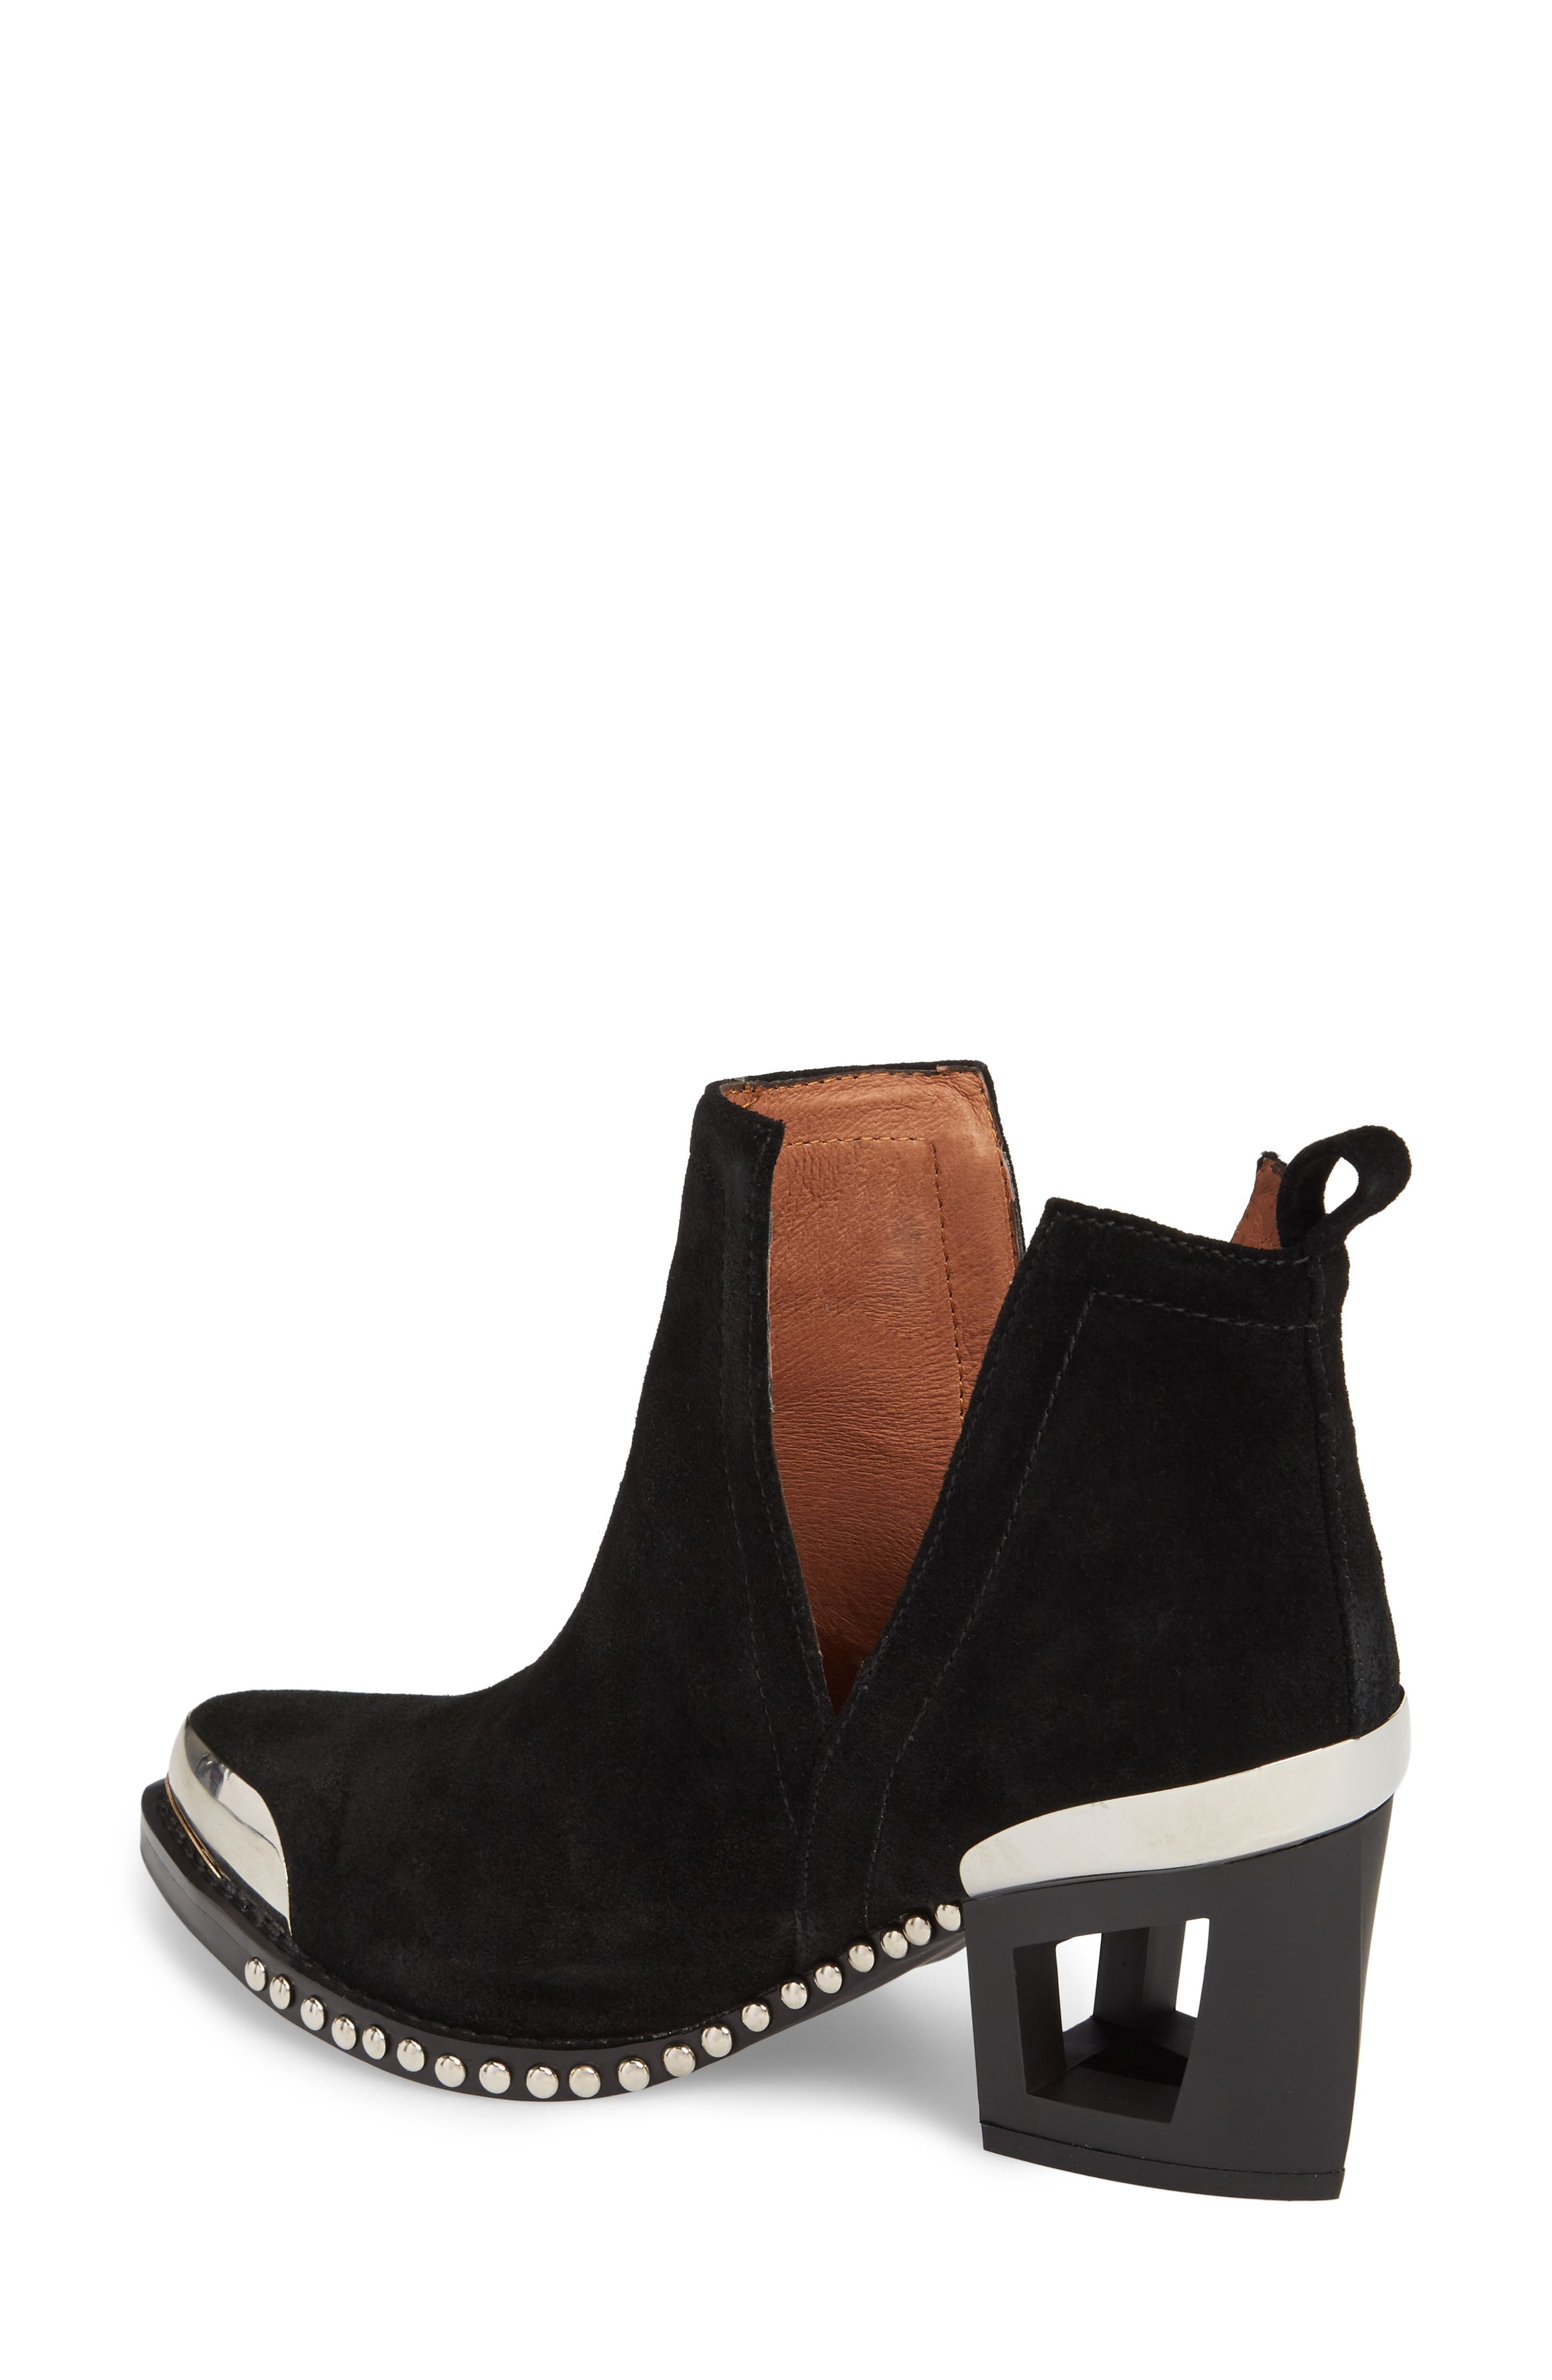 Optimum Studded Snake Textured Bootie,                             Alternate thumbnail 2, color,                             002